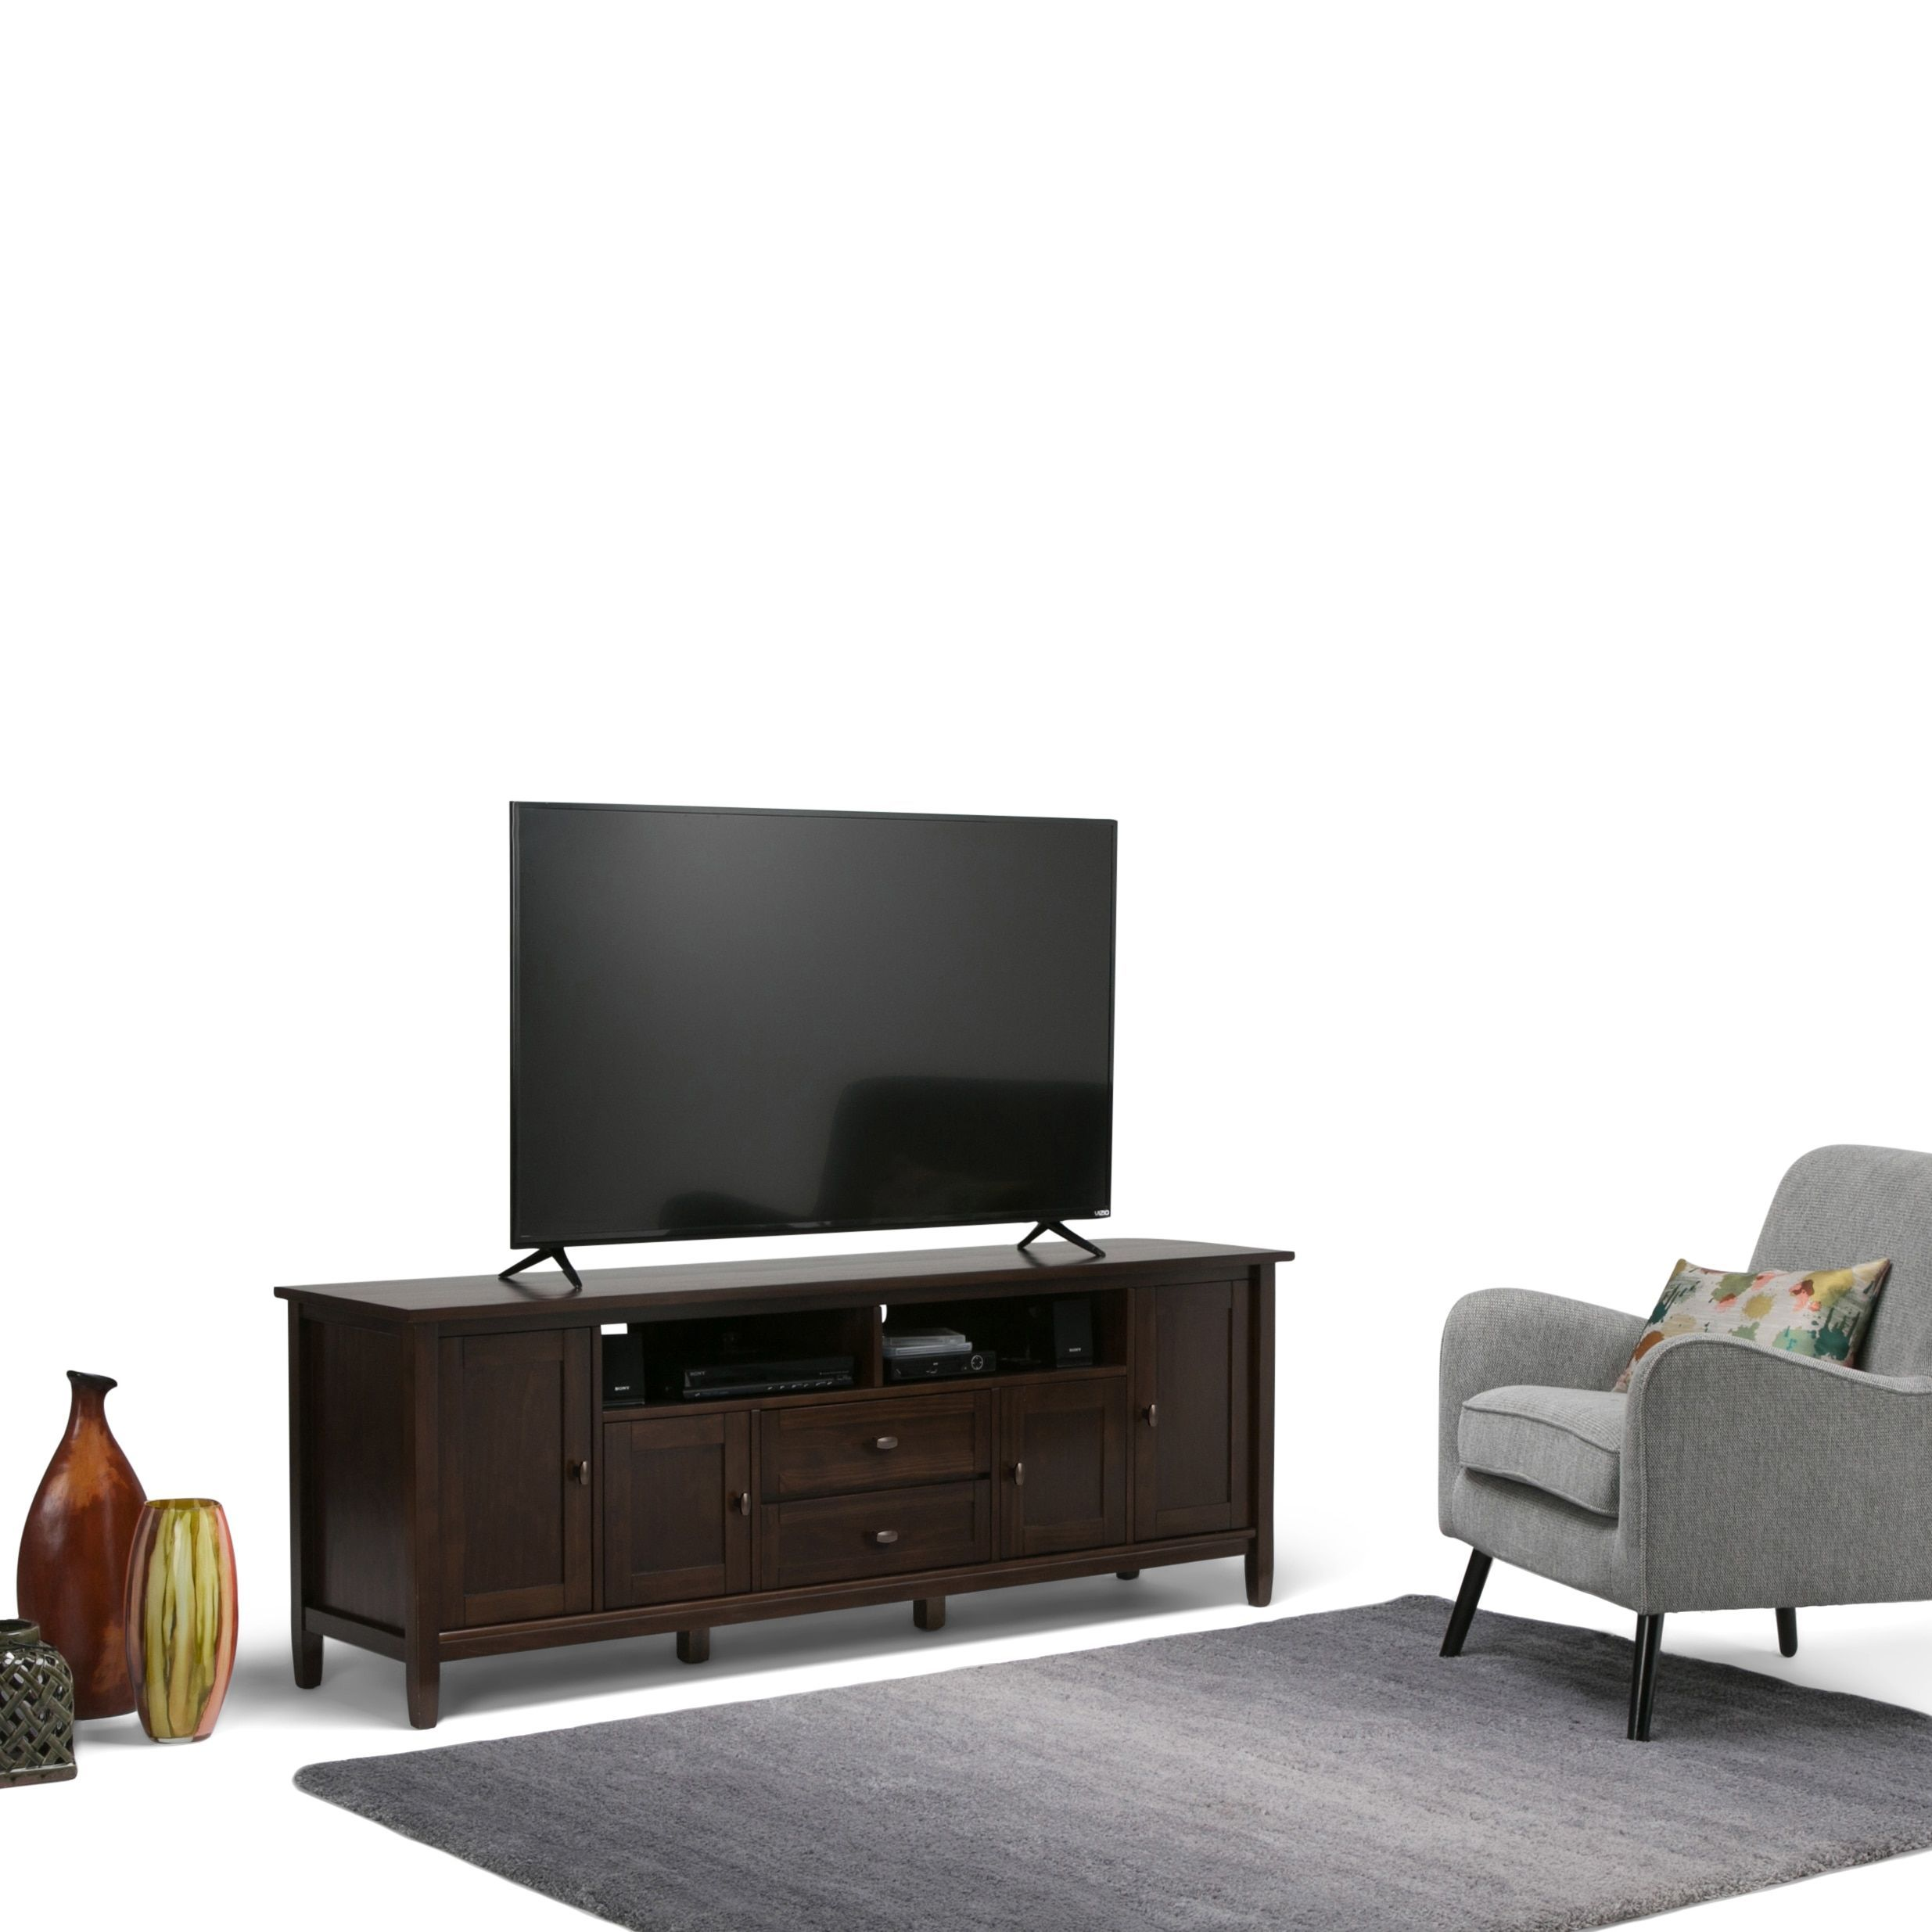 Wyndenhall Norfolk 72 Inch Tv Stand For Tvs Up To 80 Inches Tobacco